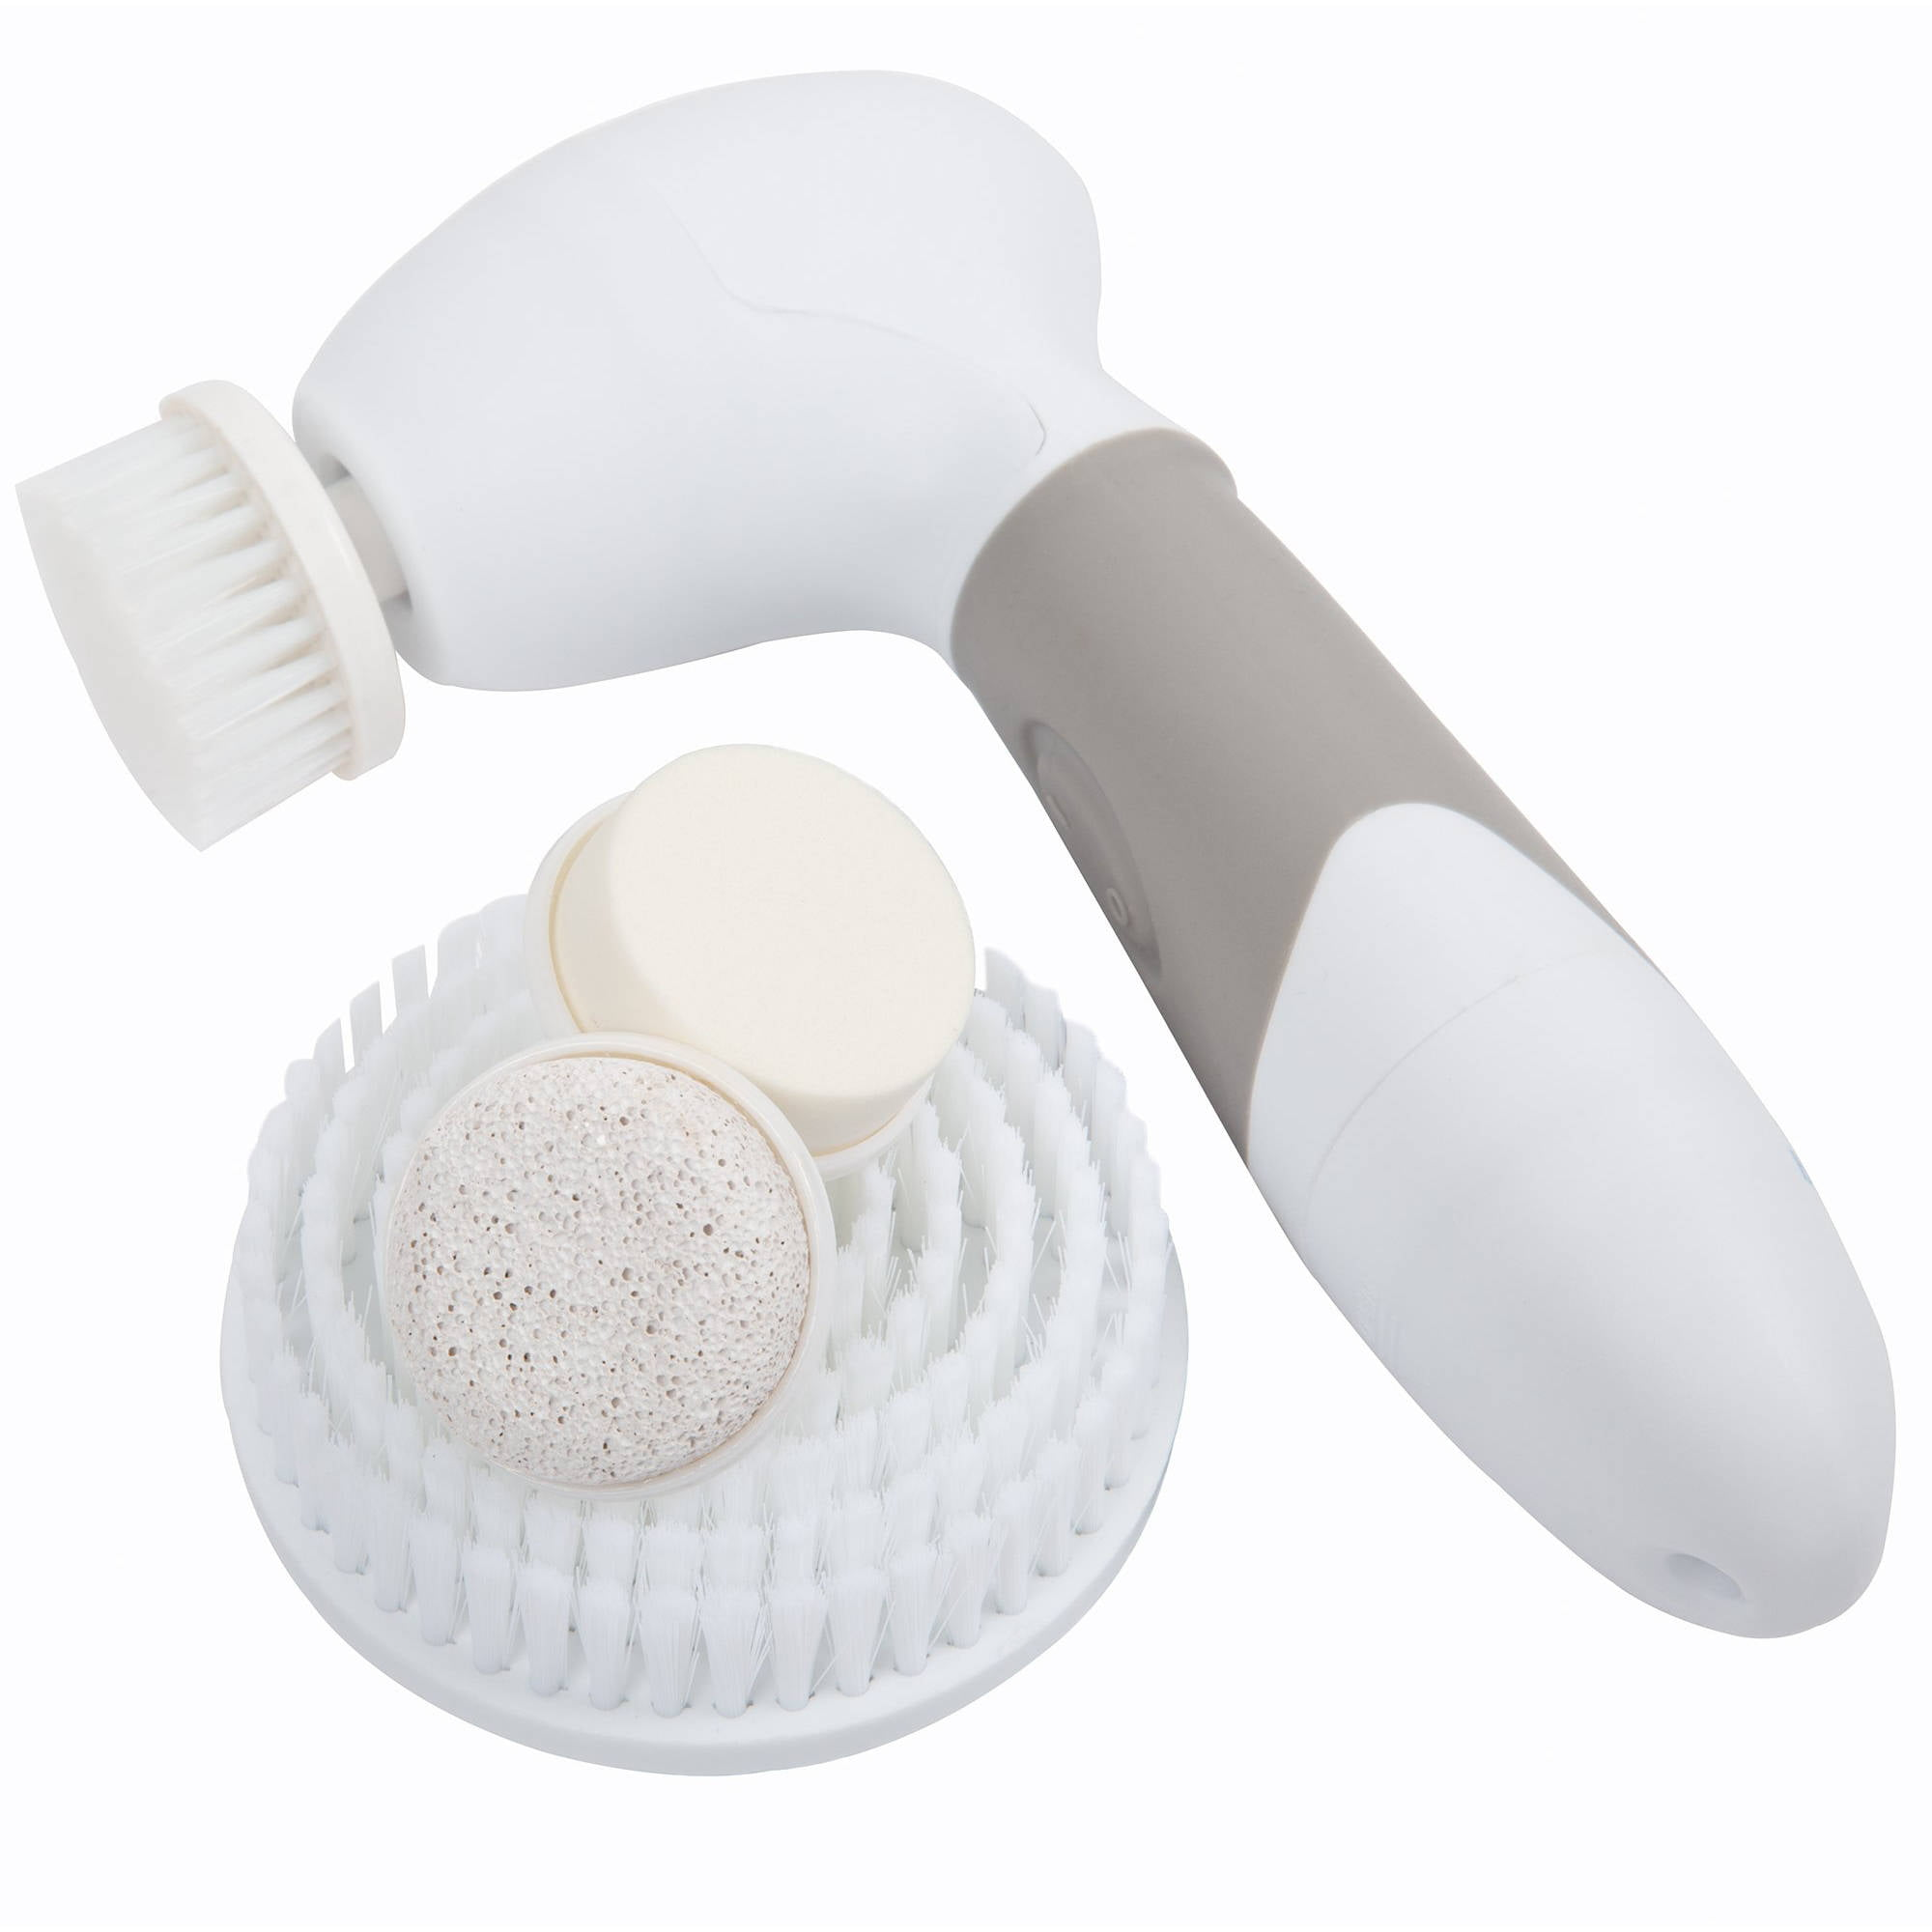 4 In 1 Waterproof Facial Cleaning Exfoliating Spin Brush Scrubber